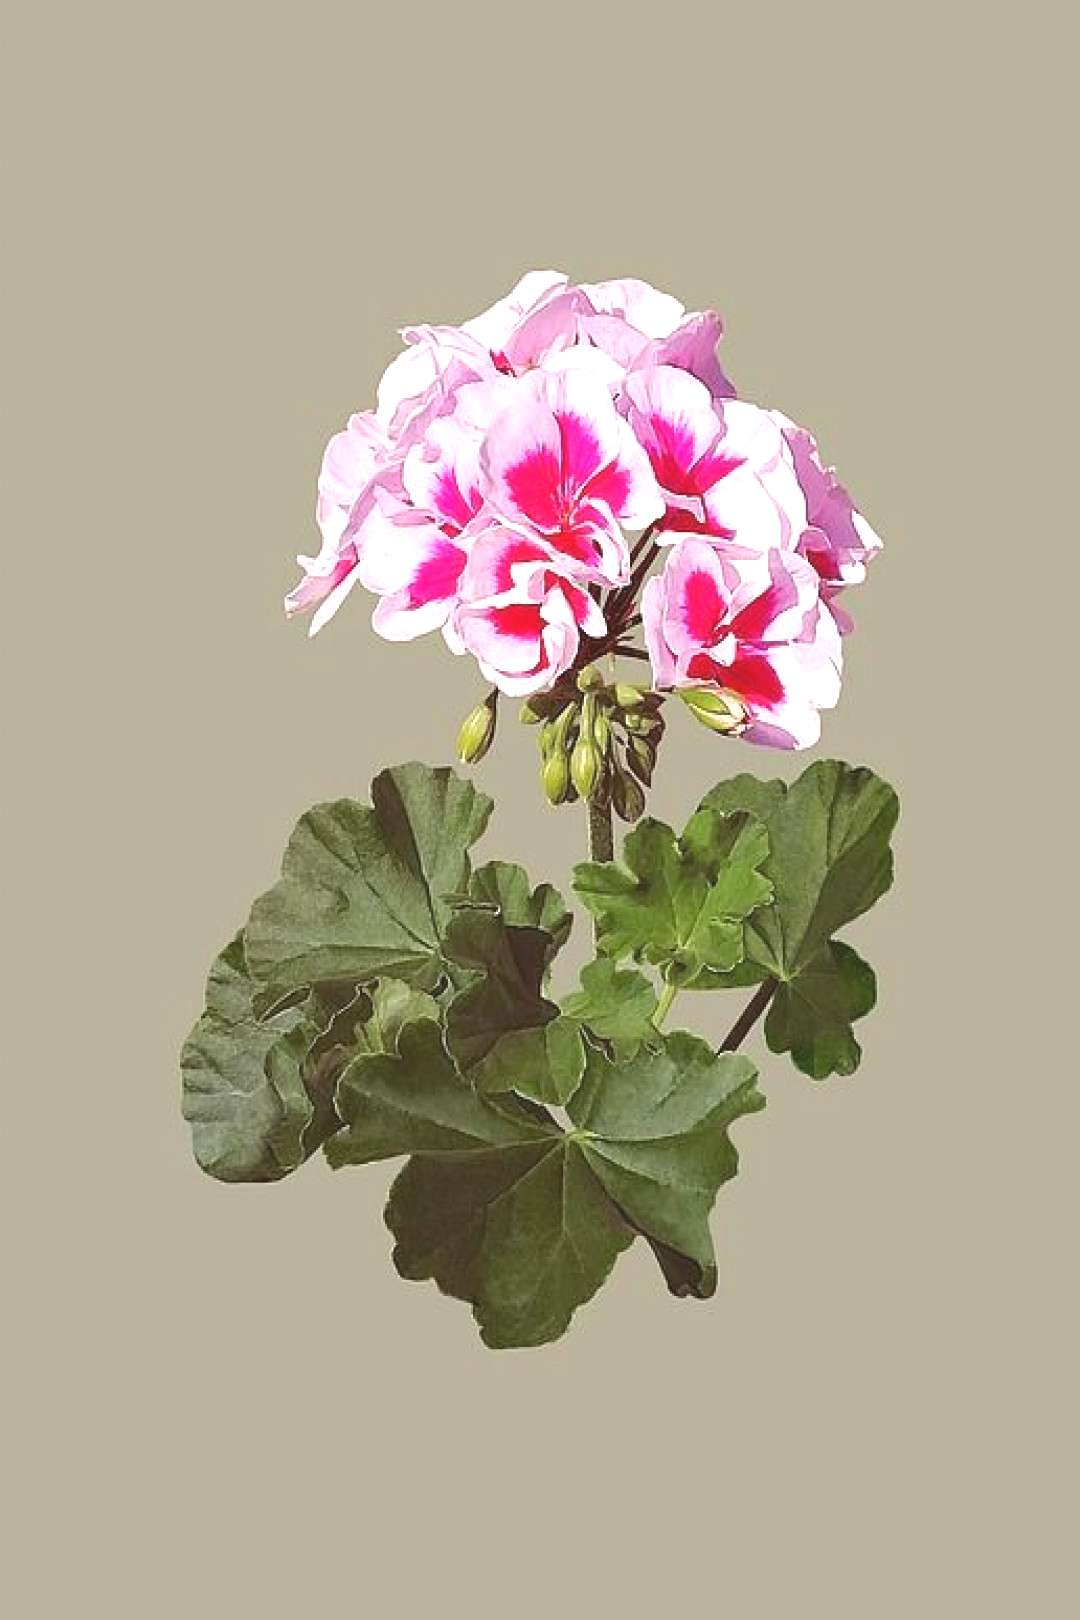 Geraniums Meaning Vines - -